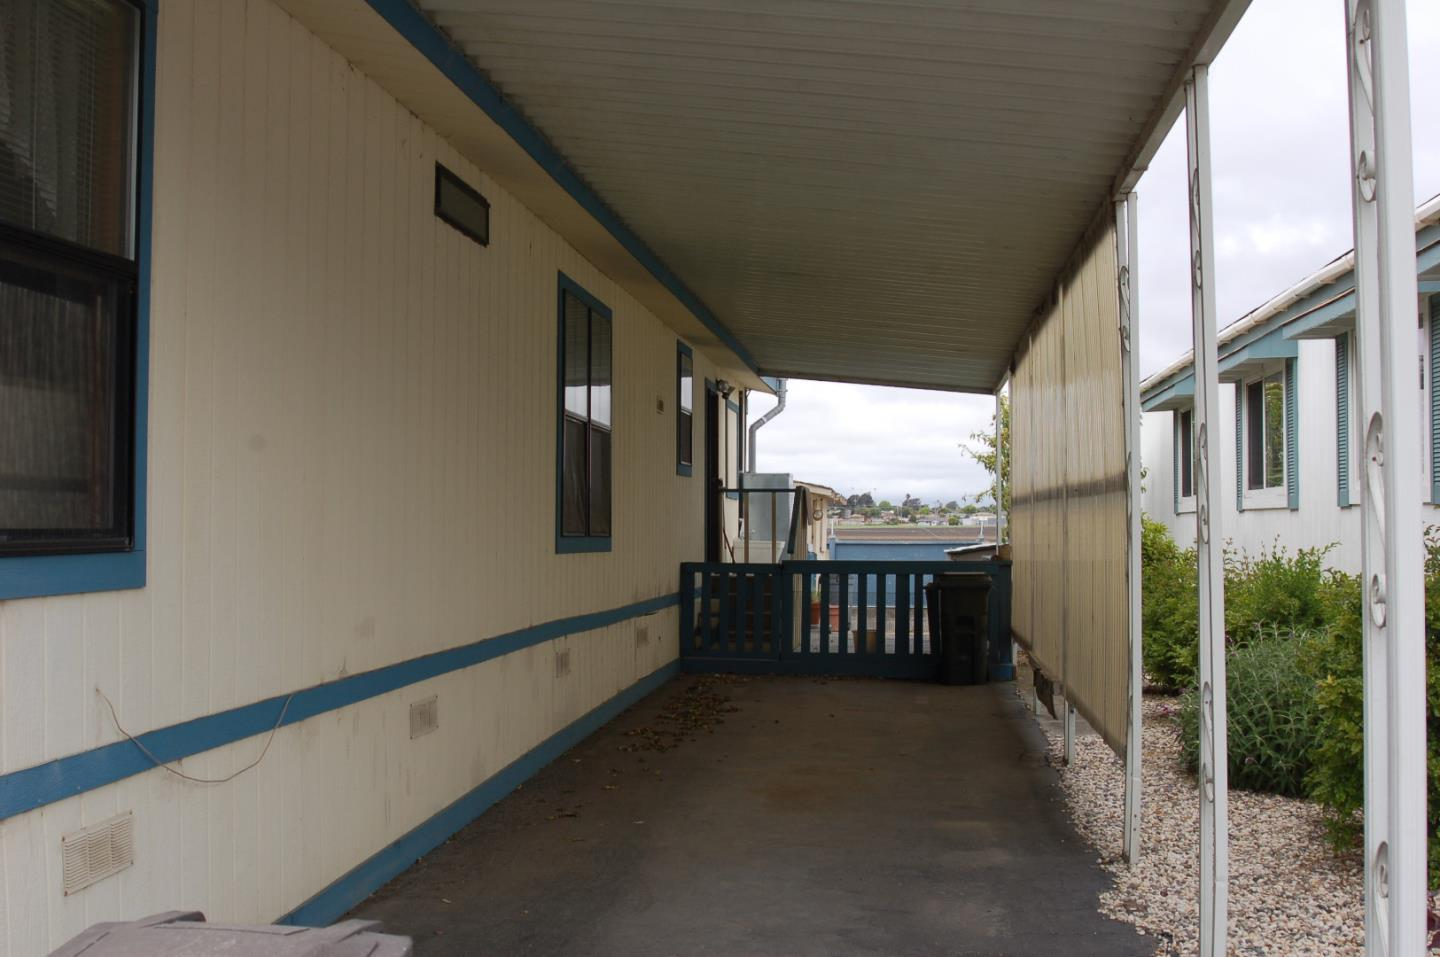 Additional photo for property listing at 150 Kern Street 150 Kern Street Salinas, California 93905 United States